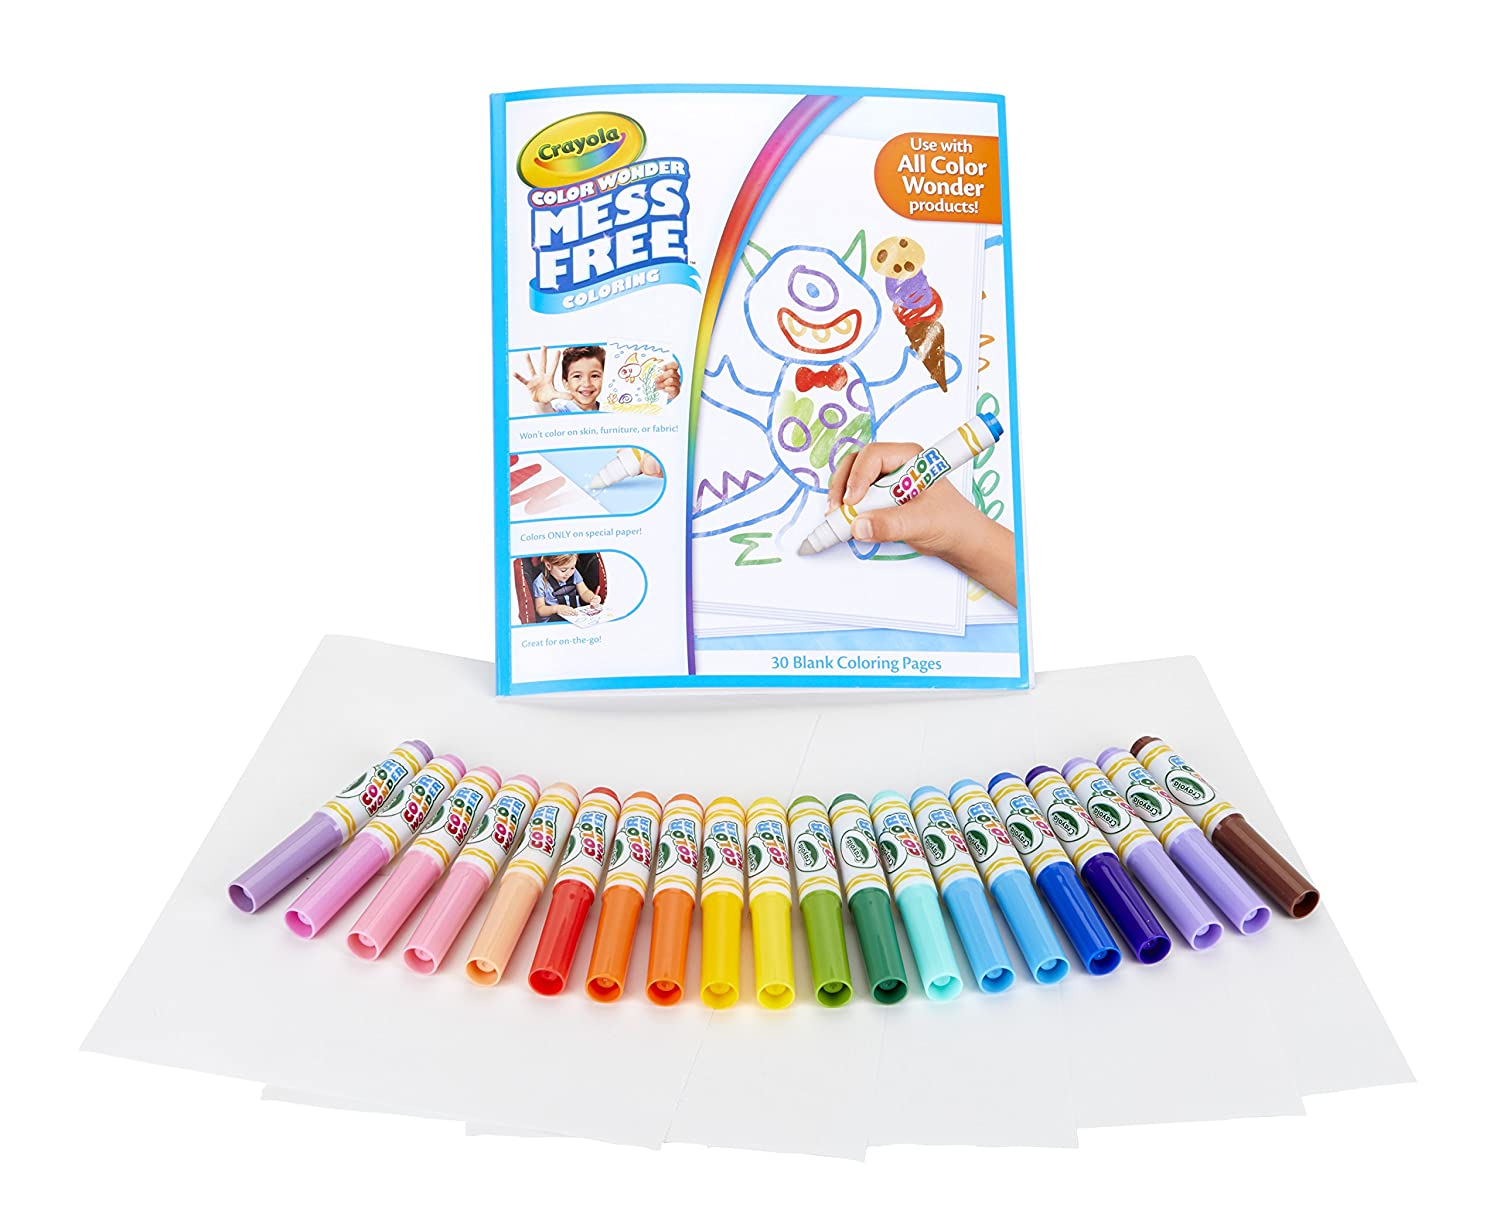 amazon com crayola color wonder markers and paper mess free